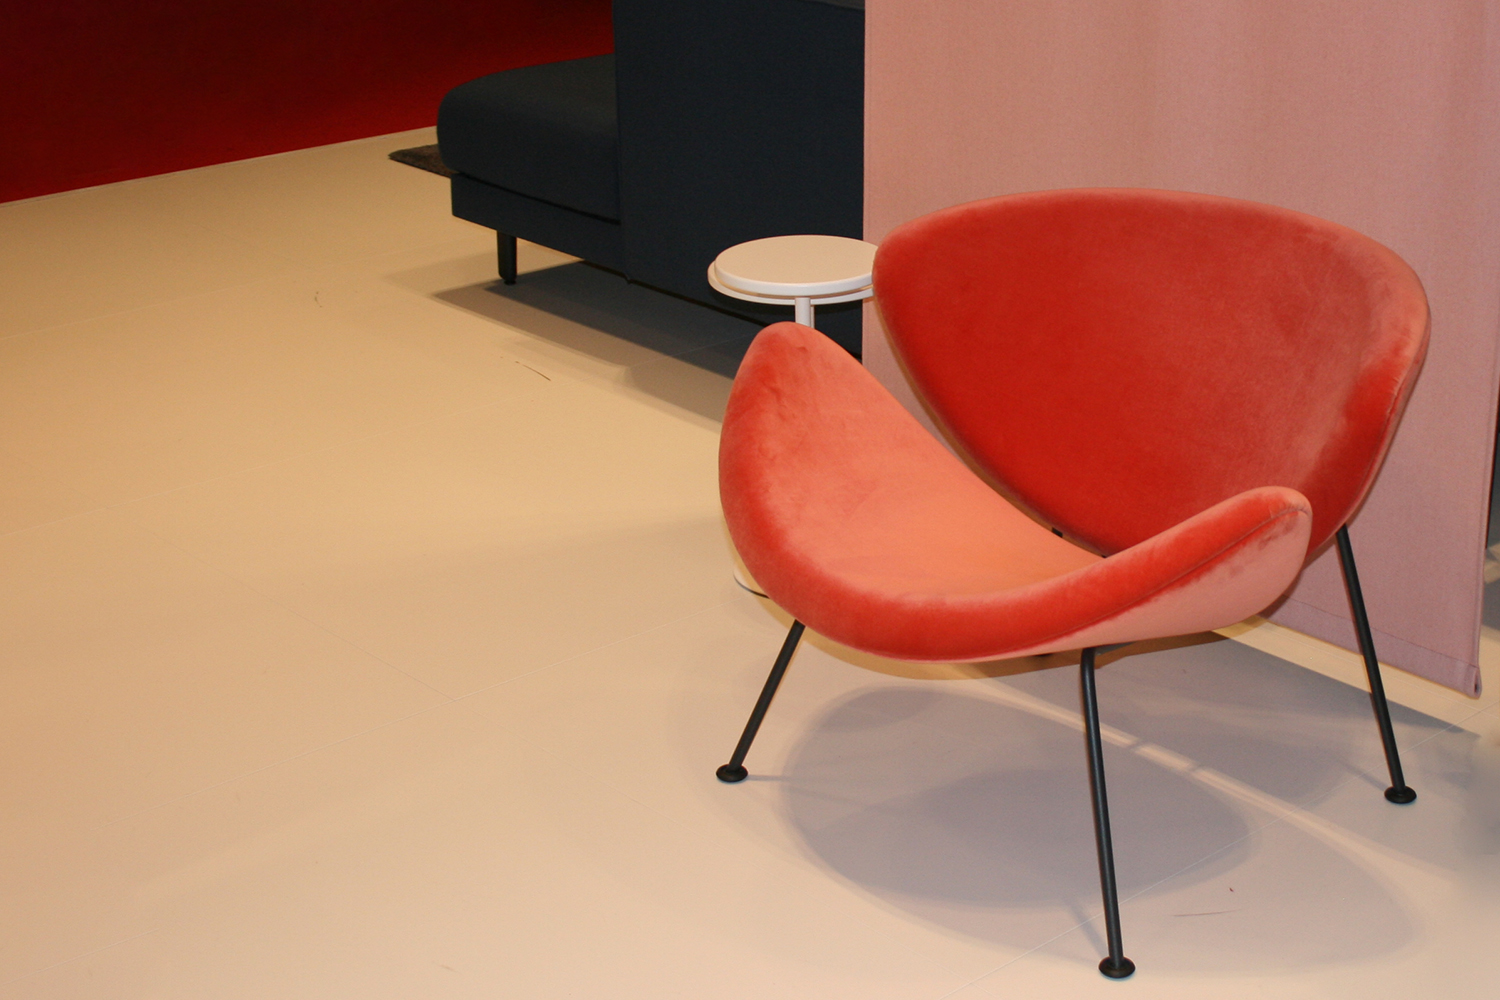 Artifort Orange Slice Chair Pierre Pauilin Salone del Mobile Milaan